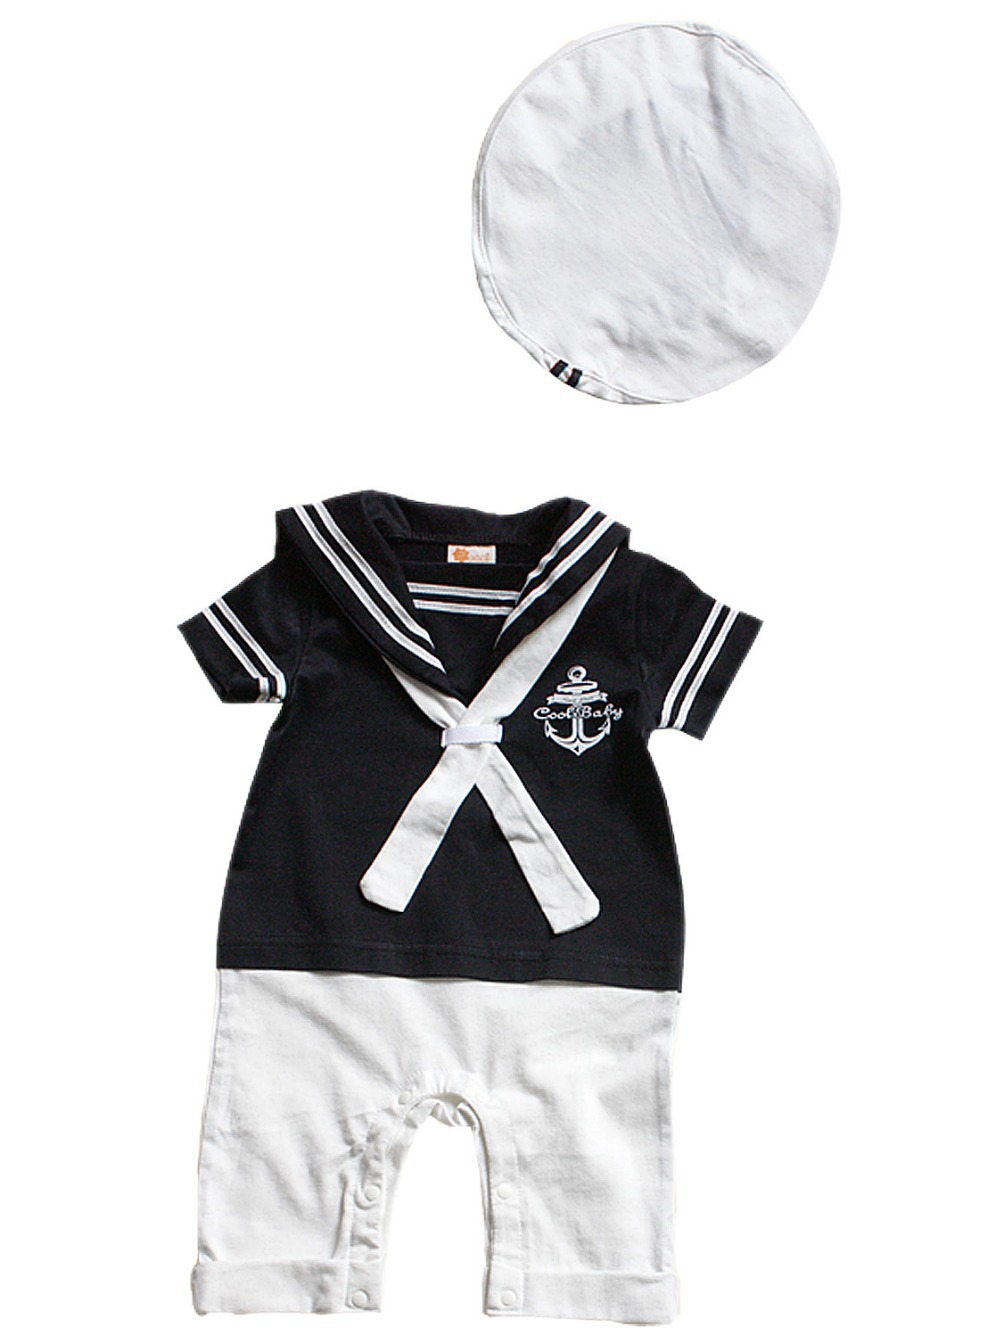 e677c653454e Baby Boy Clothes 6 12 12 18 18 24 Months Navy Hats Rompers Infant ...